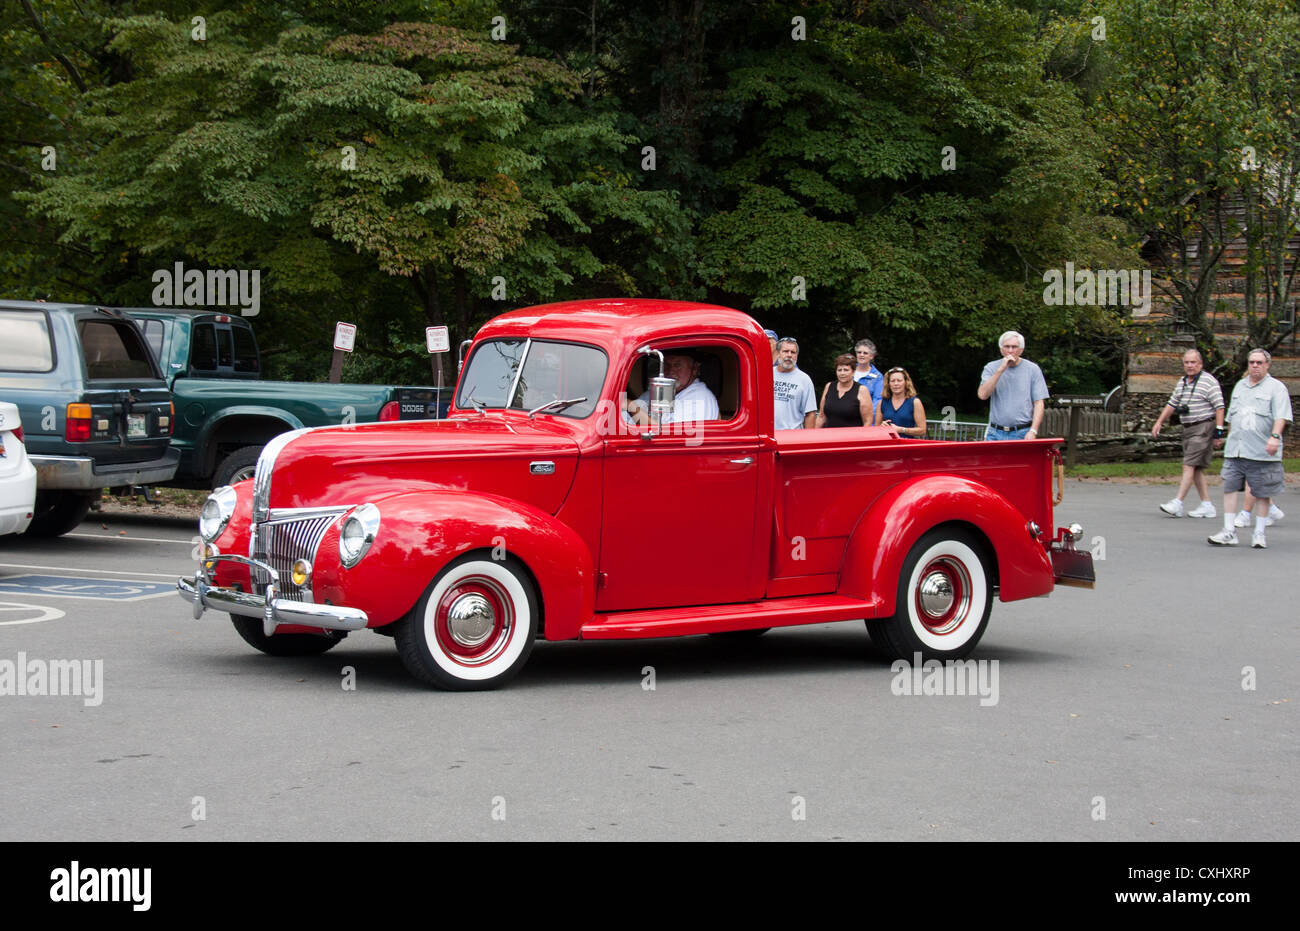 Vintage Ford Truck High Resolution Stock Photography And Images Alamy